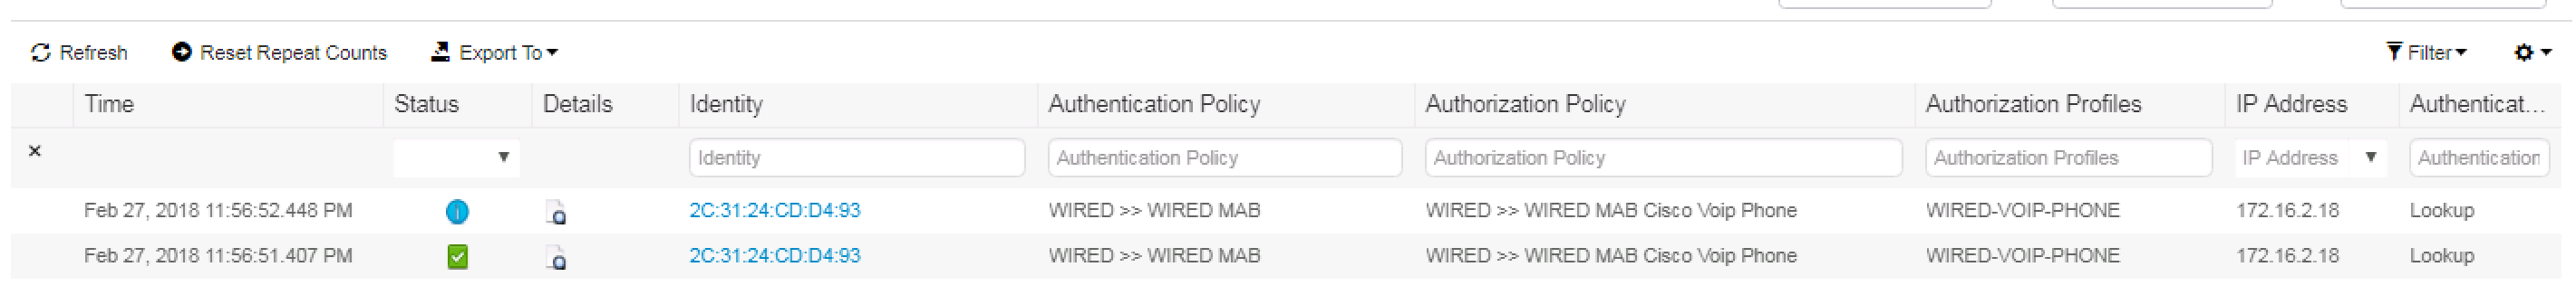 Zbise11 Cisco Ise 23 Voip Phone With Mab Auth On Wired Wiring Diagram Just Like We Should See Our Has Been Properly Authenticated And Is Hitting The Proper Authorization Policy As Expected